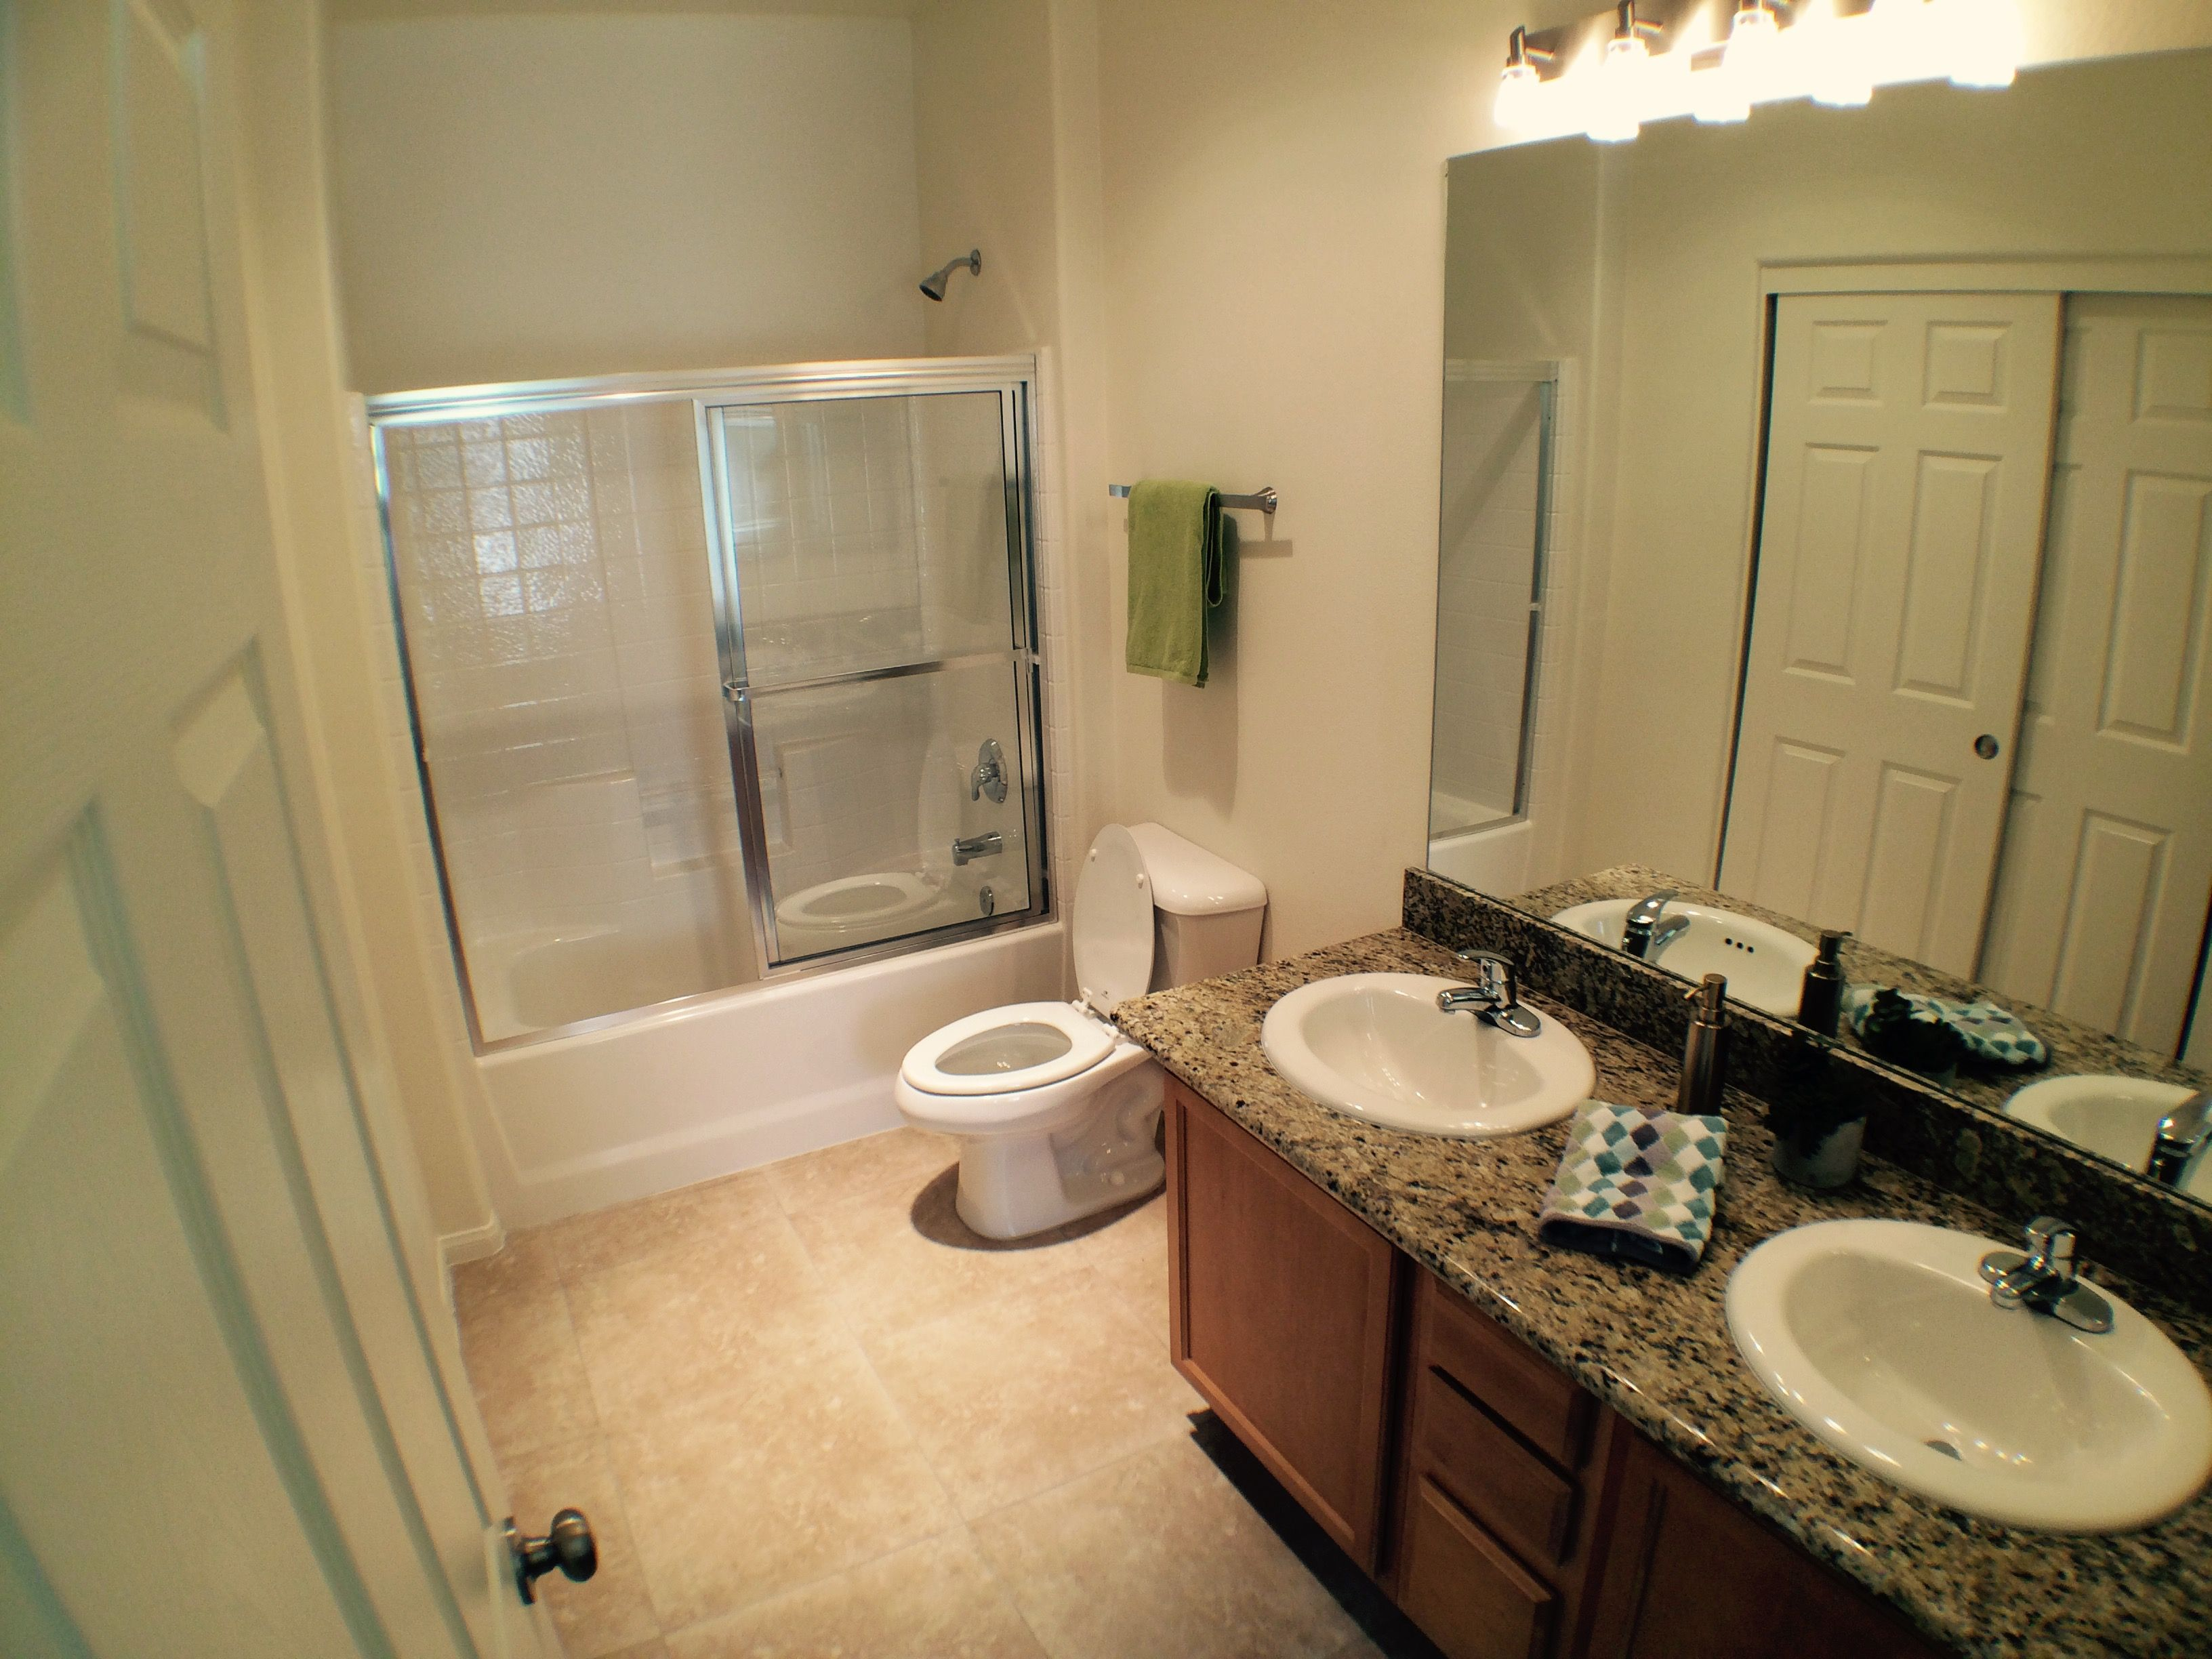 Master bedroom bathroom  Master Bedroom Bathroom Show Suite  Listings  Lantana At